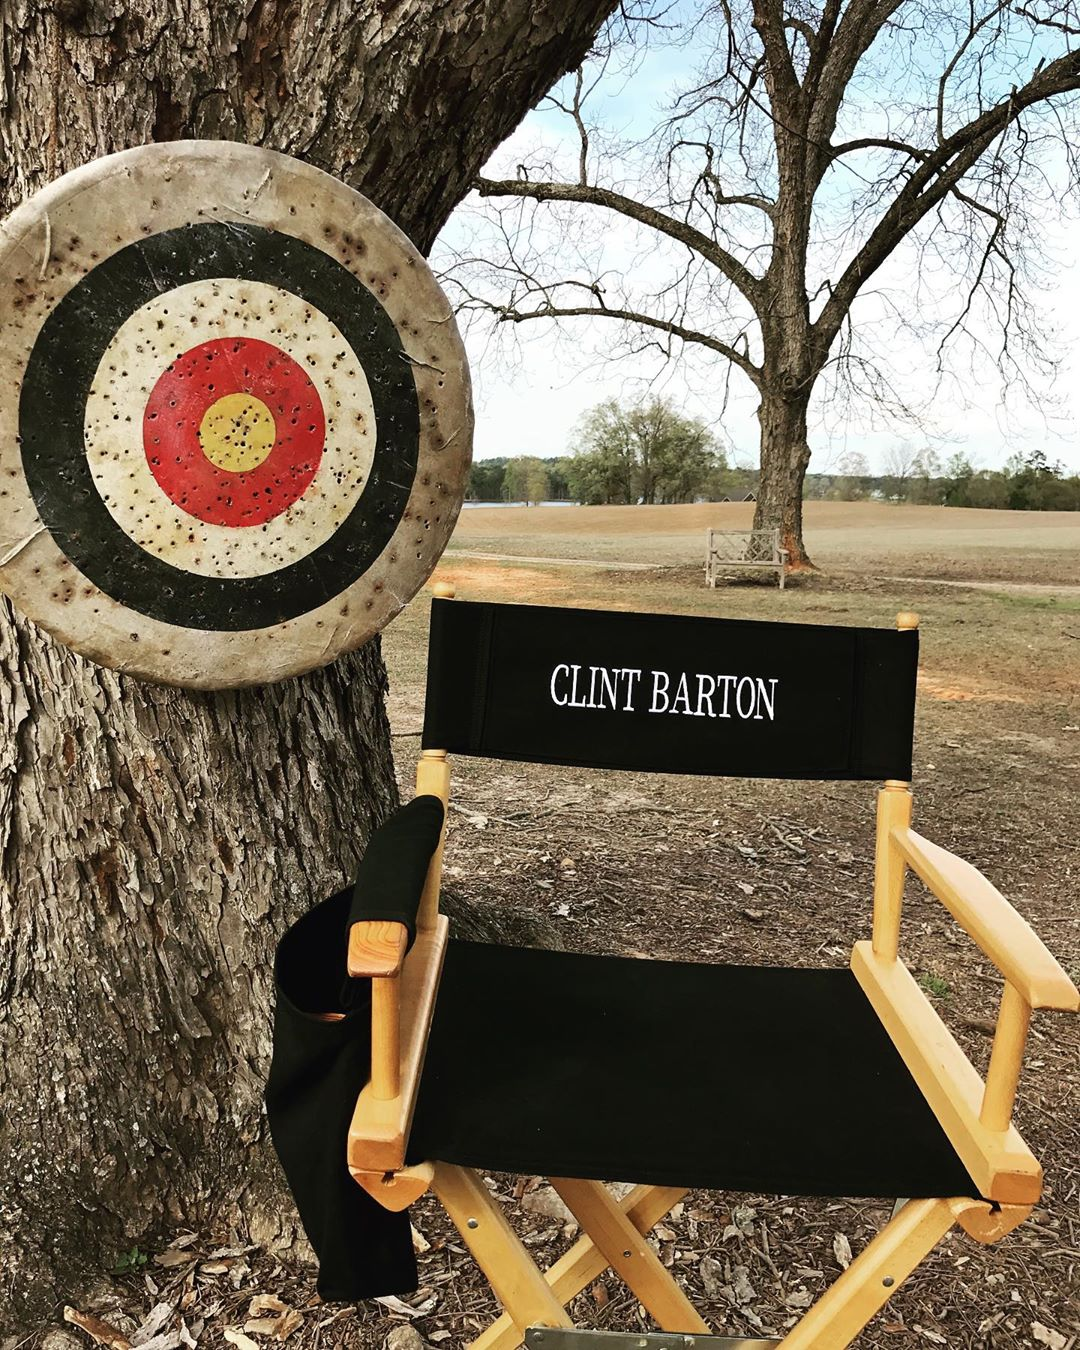 Photo du tournage du film Avengers: Endgame avec la chaise de Clint Barton